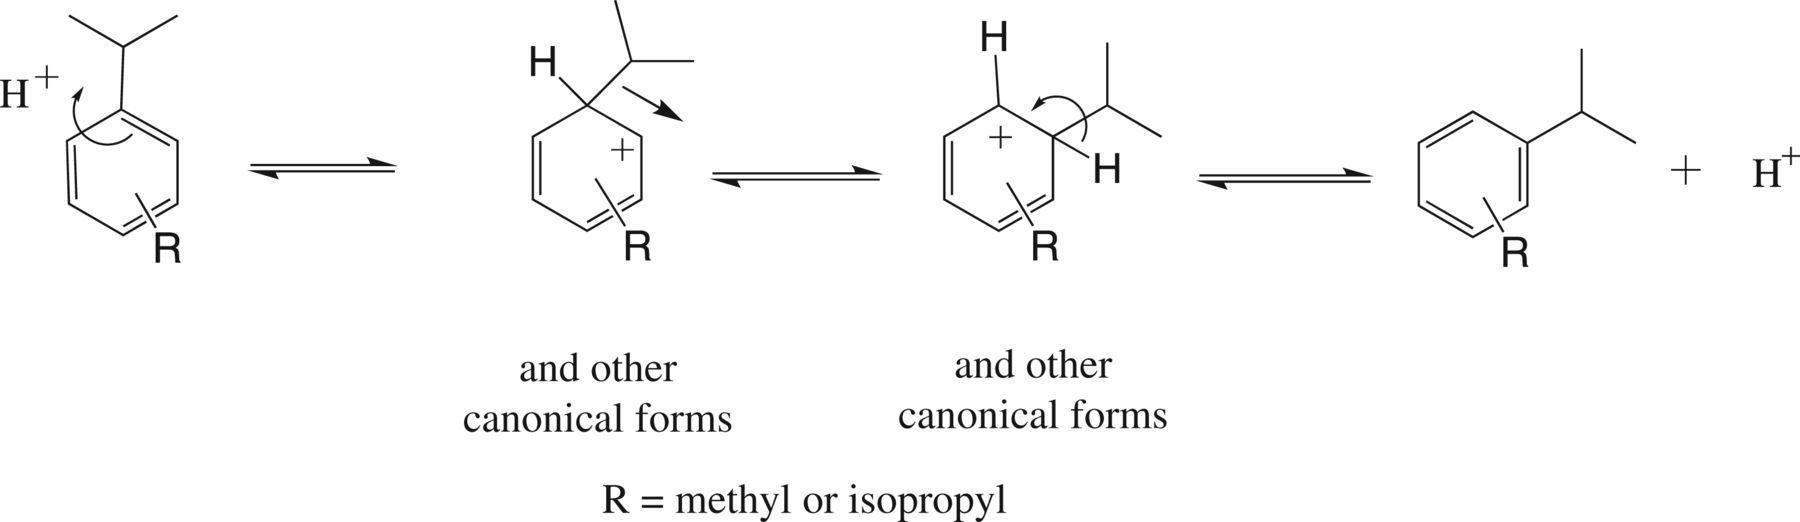 Synthesis of isopropyl-substituted anthraquinones via Friedel–Crafts